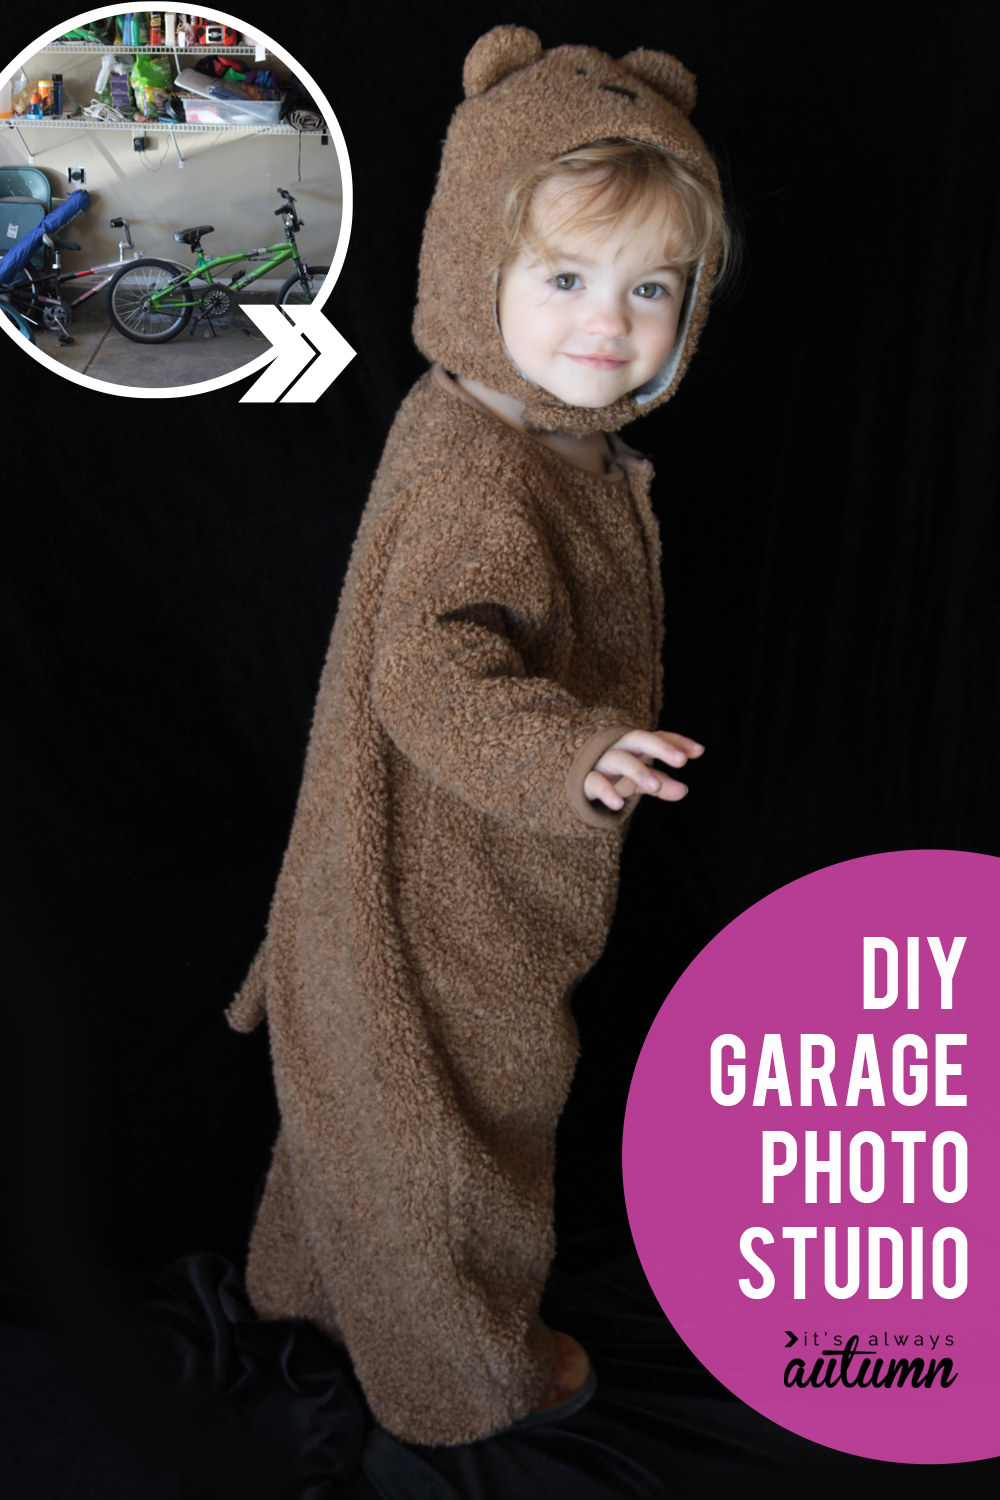 If you want great photos using natural light, set up a simple garage photo studio. All you need is some black fabric!